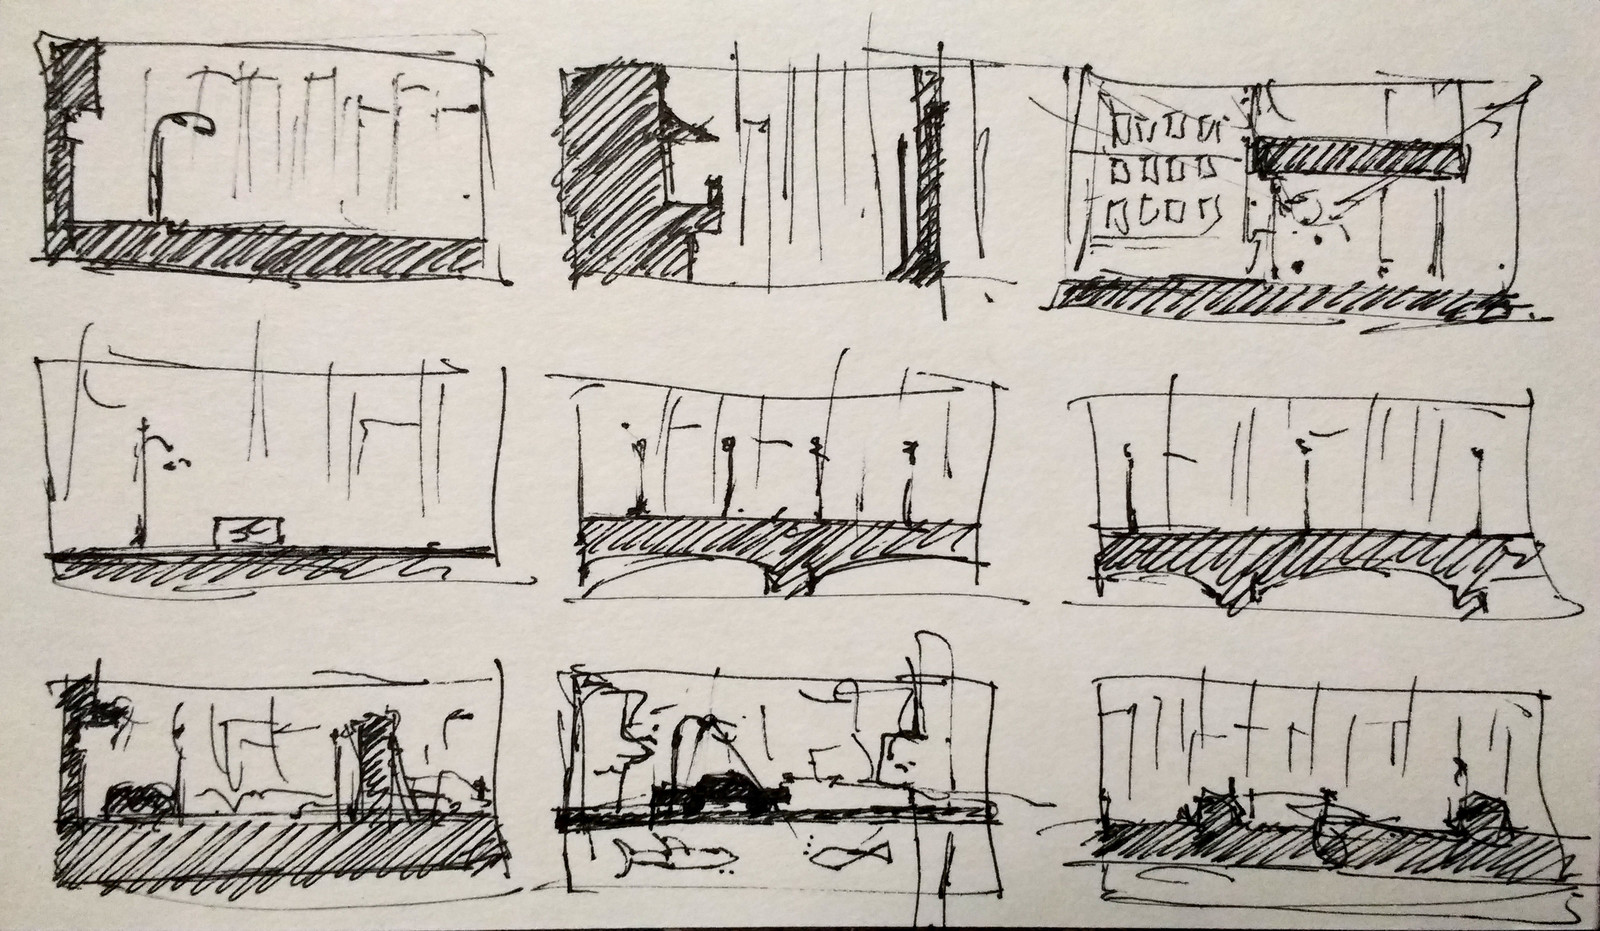 Thumbs - crude but good enough. Lower left chosen for comp.